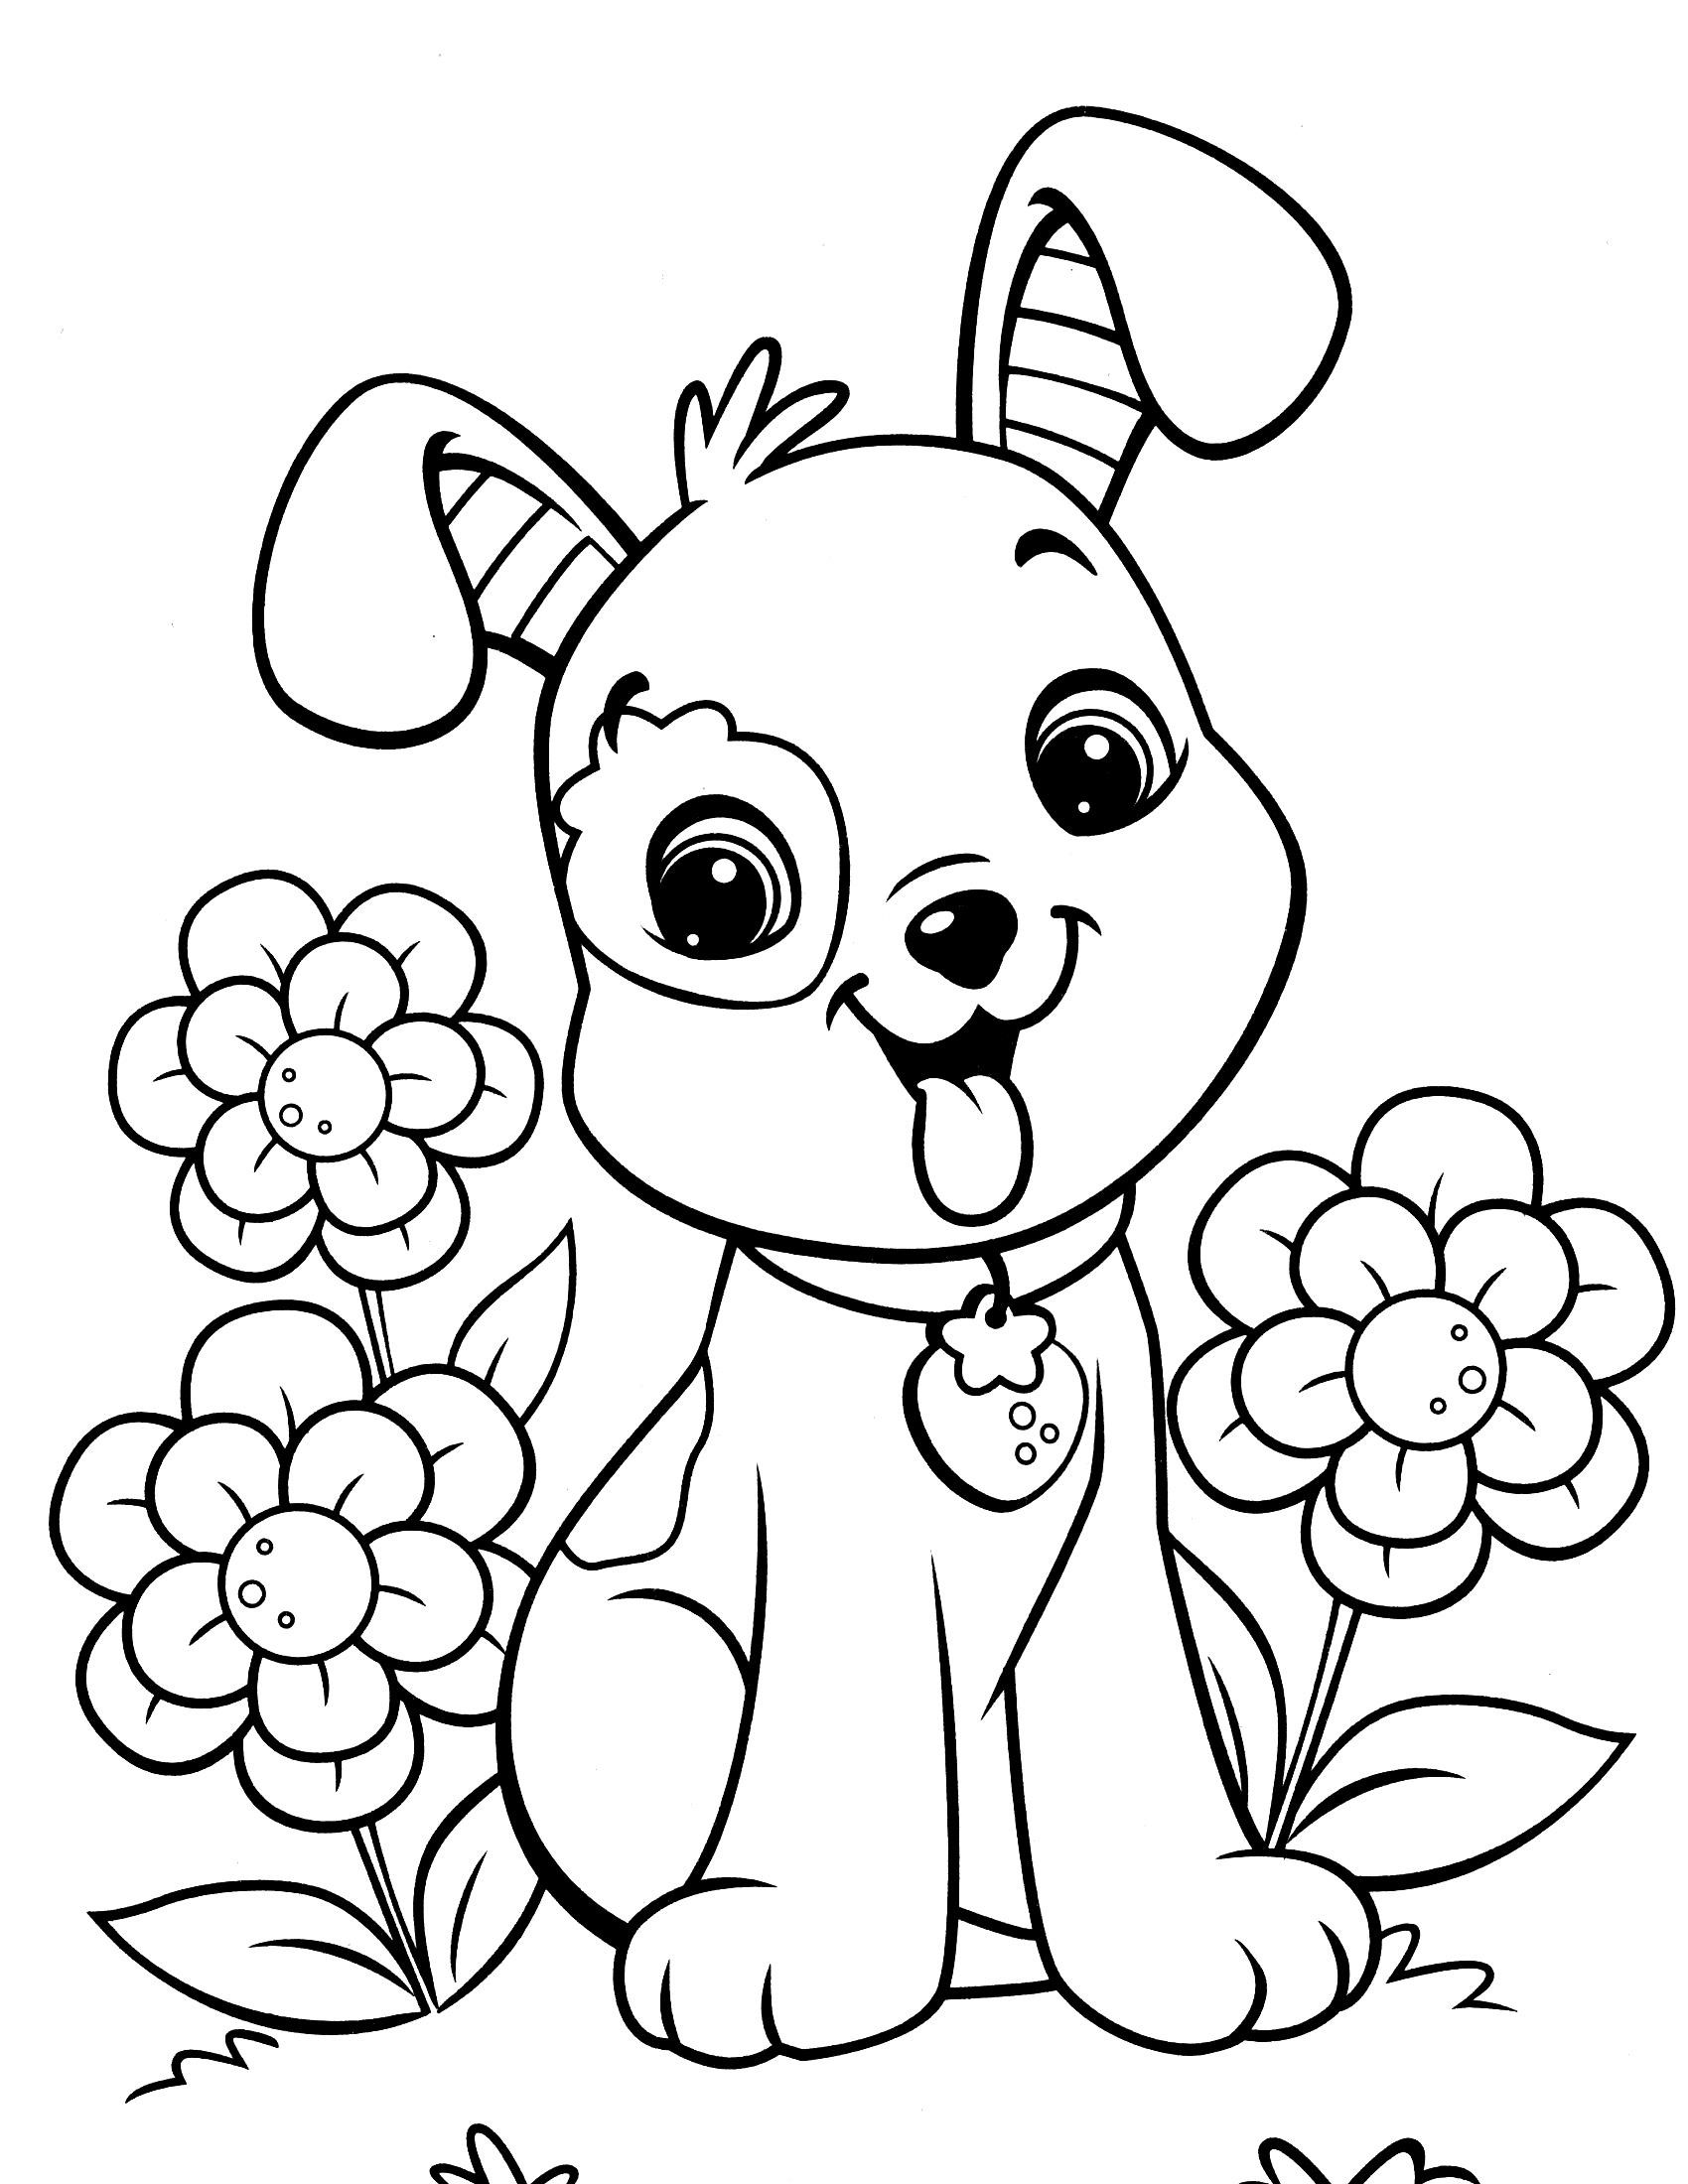 Cool-Puppy-Dog-Coloring-Pages-24